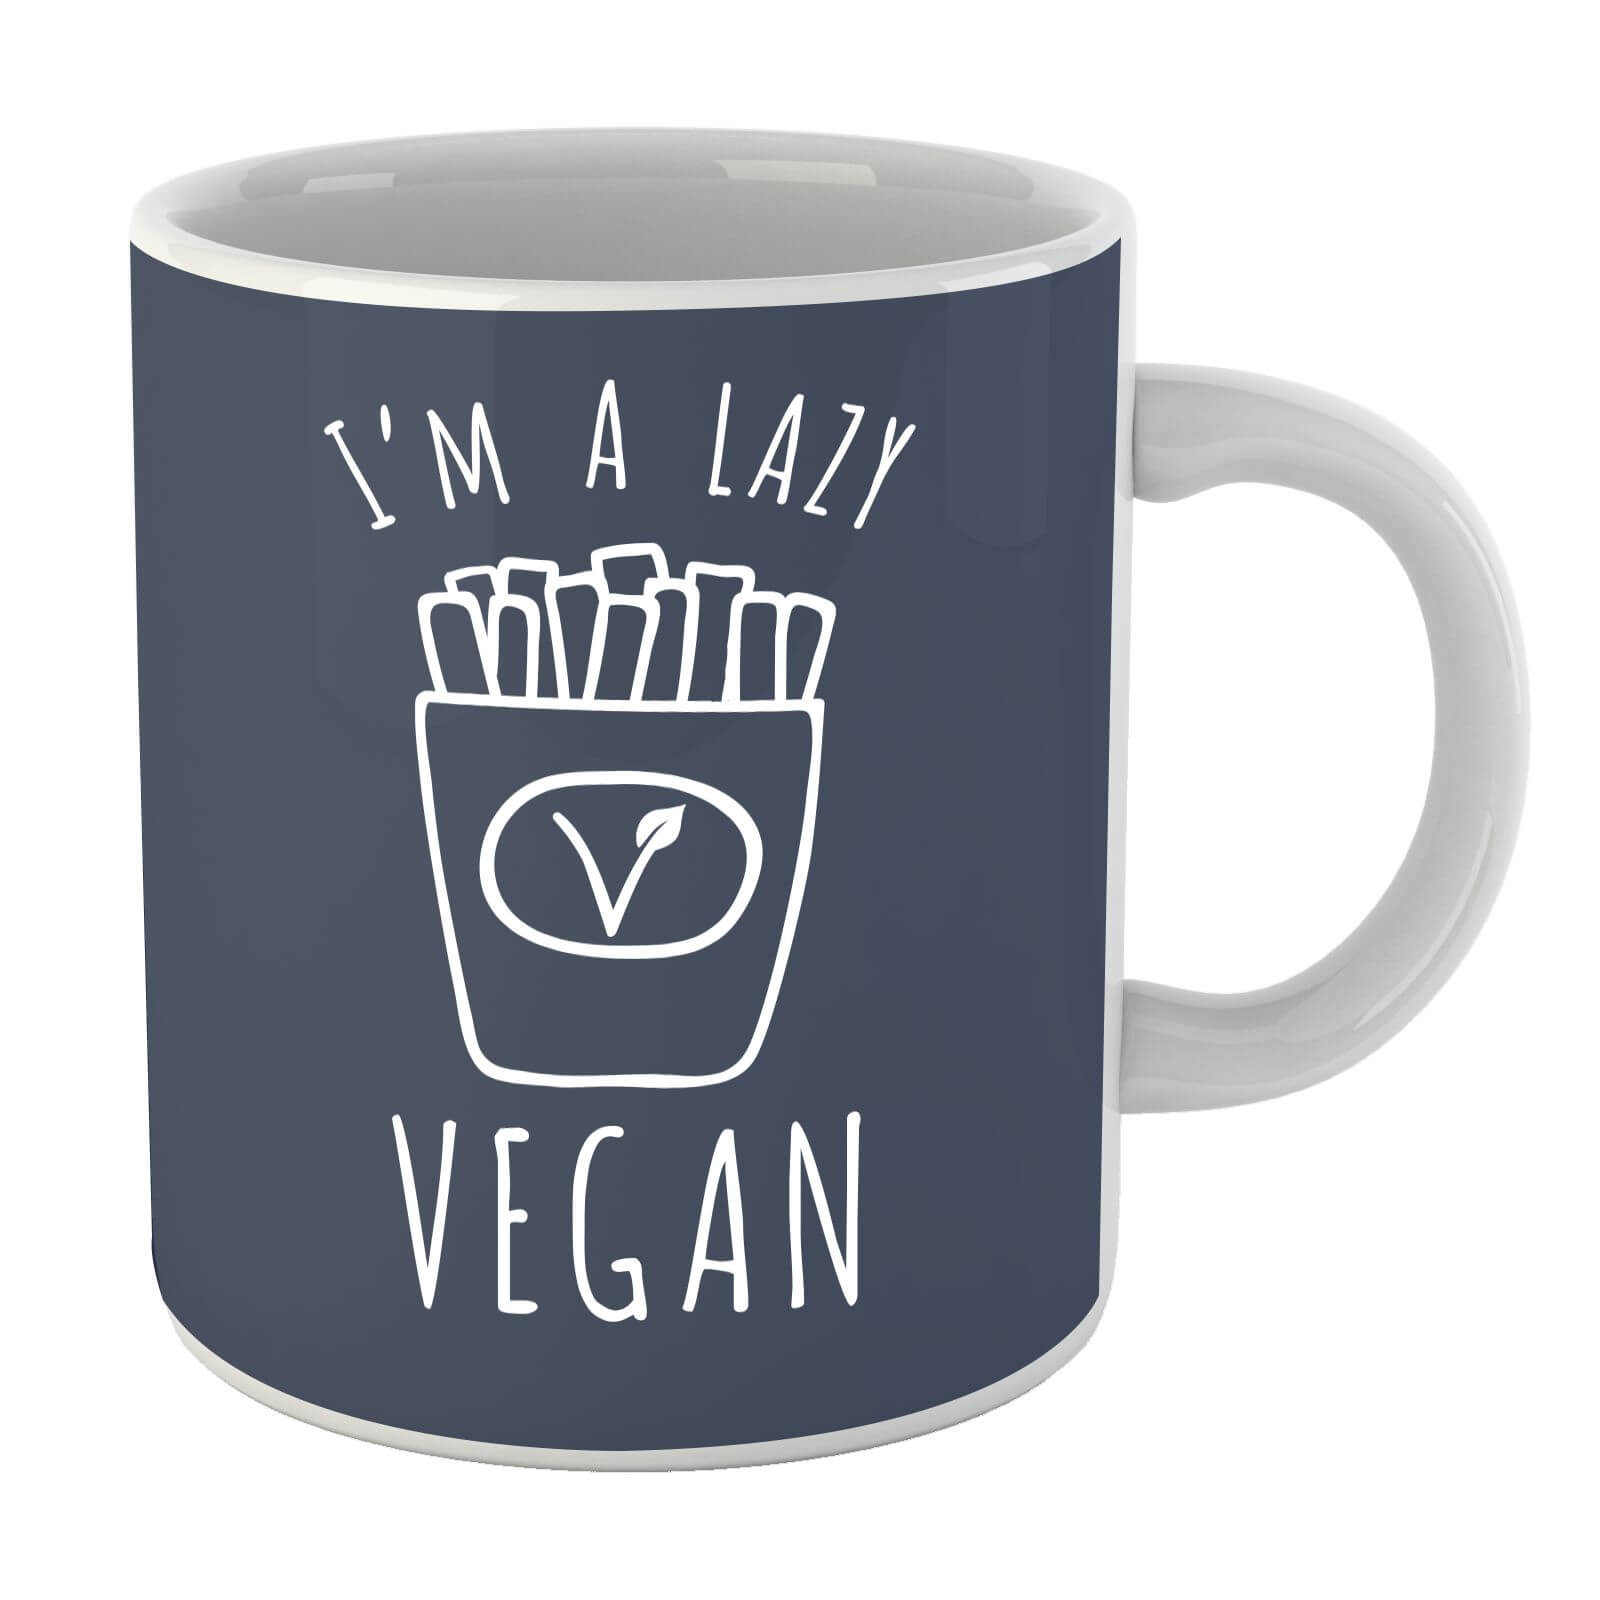 Lazy Vegan Mug